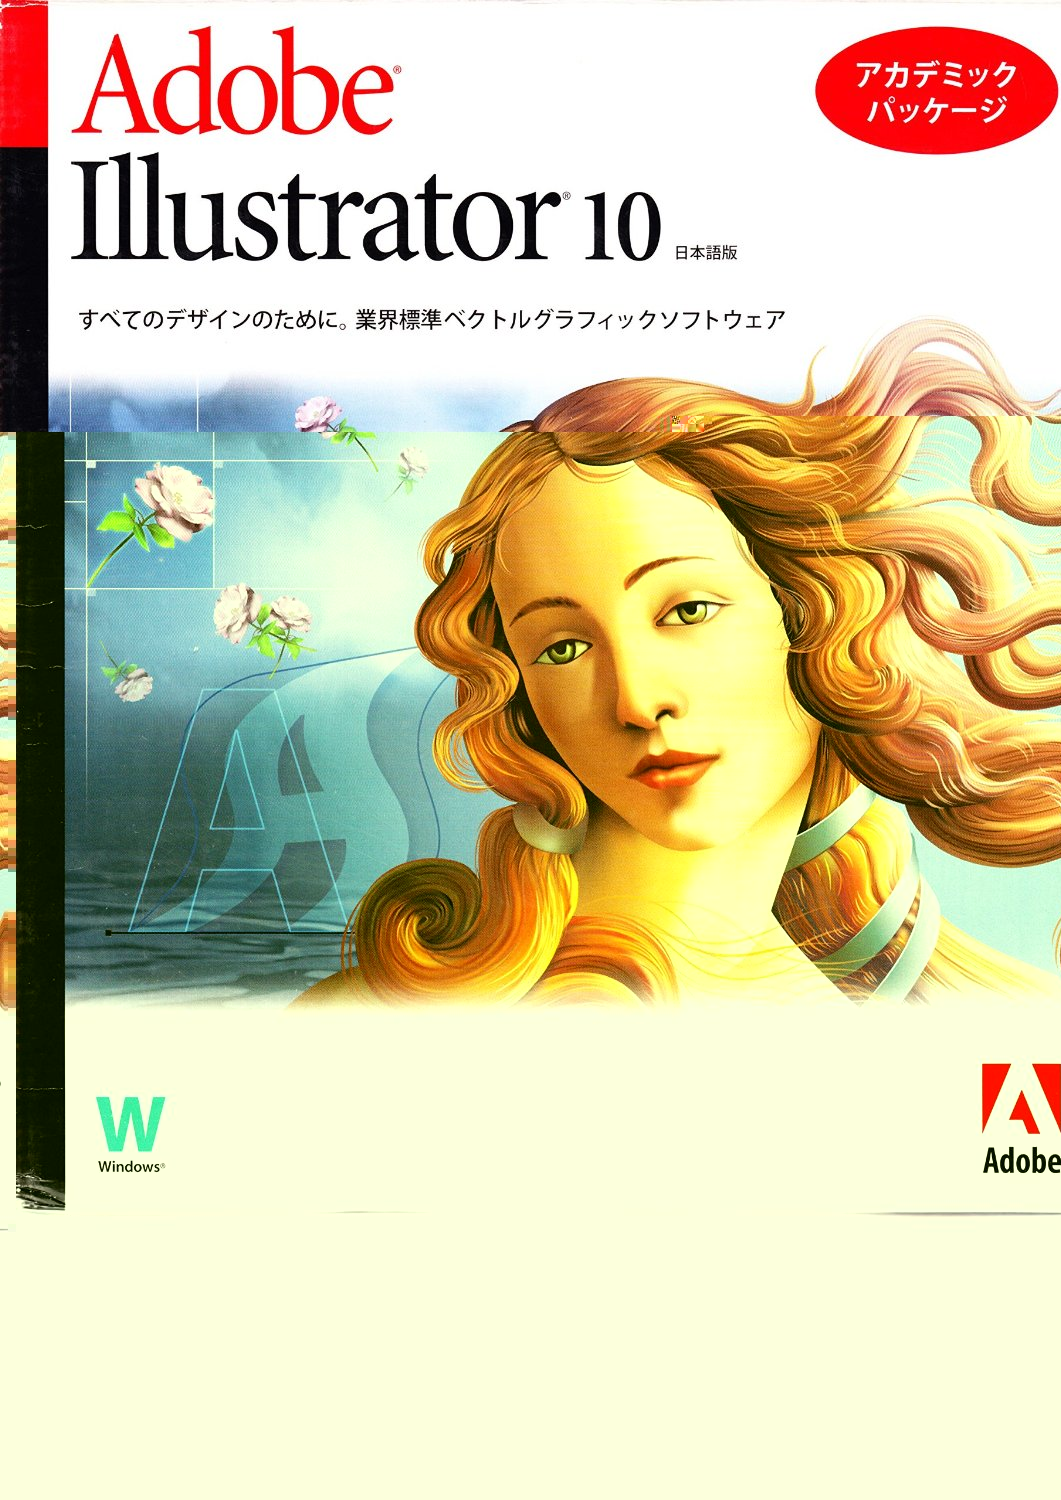 Adobe Illustrator 10 Windows アカデミック版